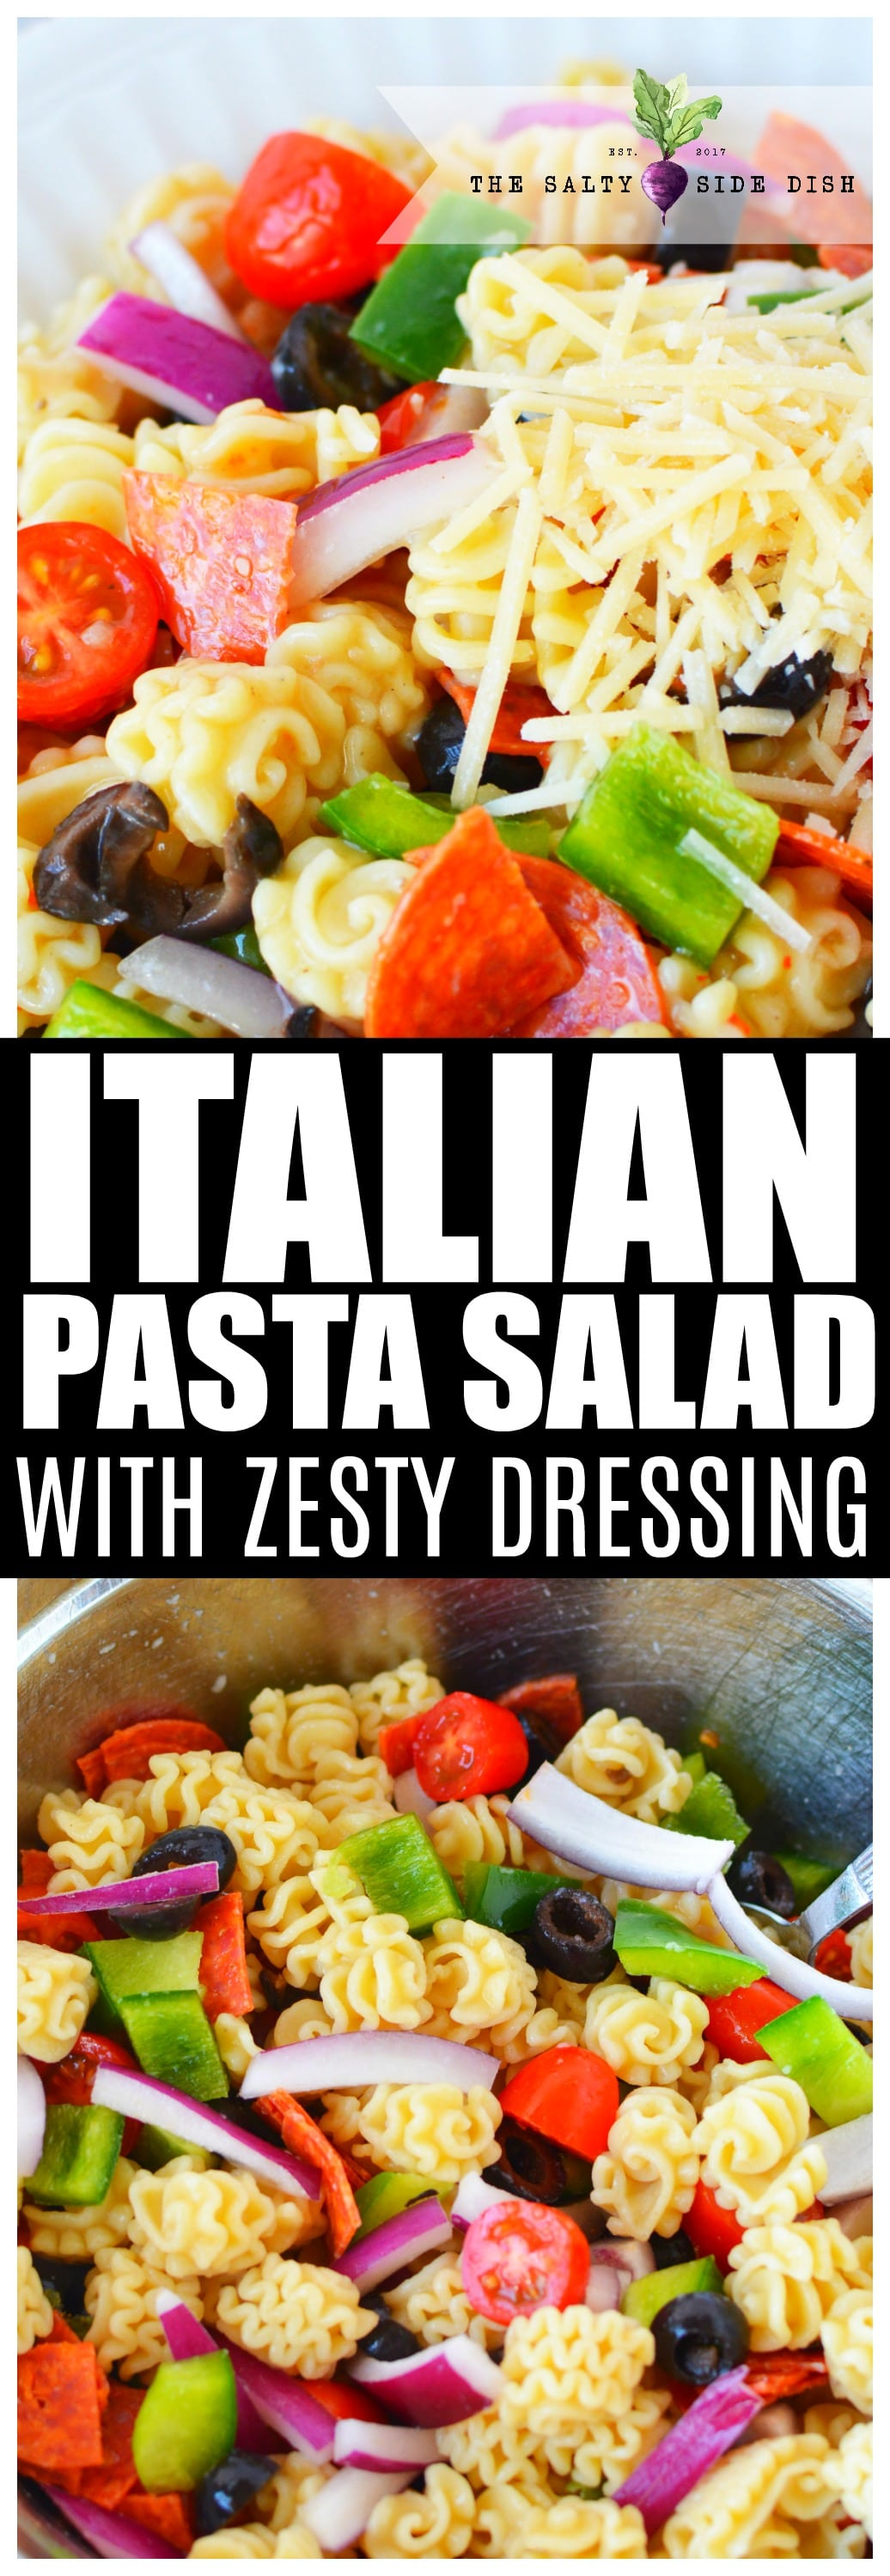 Italian Pasta Salad is the perfect cold side dish salad recipe with zesty Italian dressing #salad #italian #pasta #picnic #salads #dressing #recipe #food #dinner #holiday